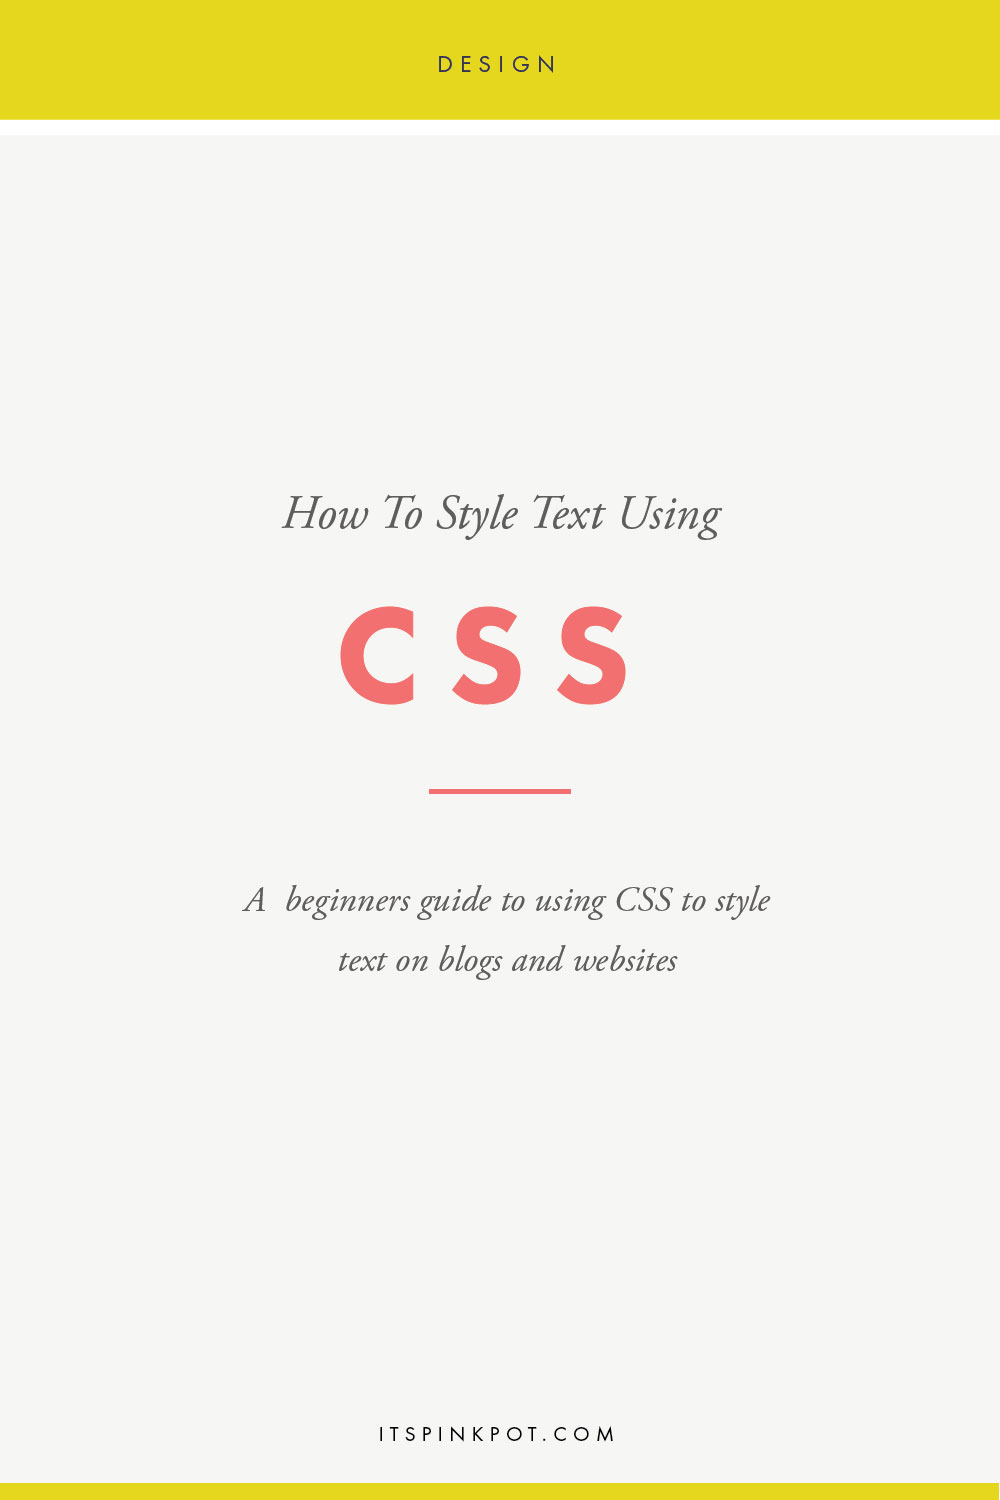 In order to style the text on your website, you will need to write CSS code for each text property. These properties can be anything from size, color, text-case, thickness of the text etc. Let's explore each of the CSS properties that we need to style text. Click to learn more >>